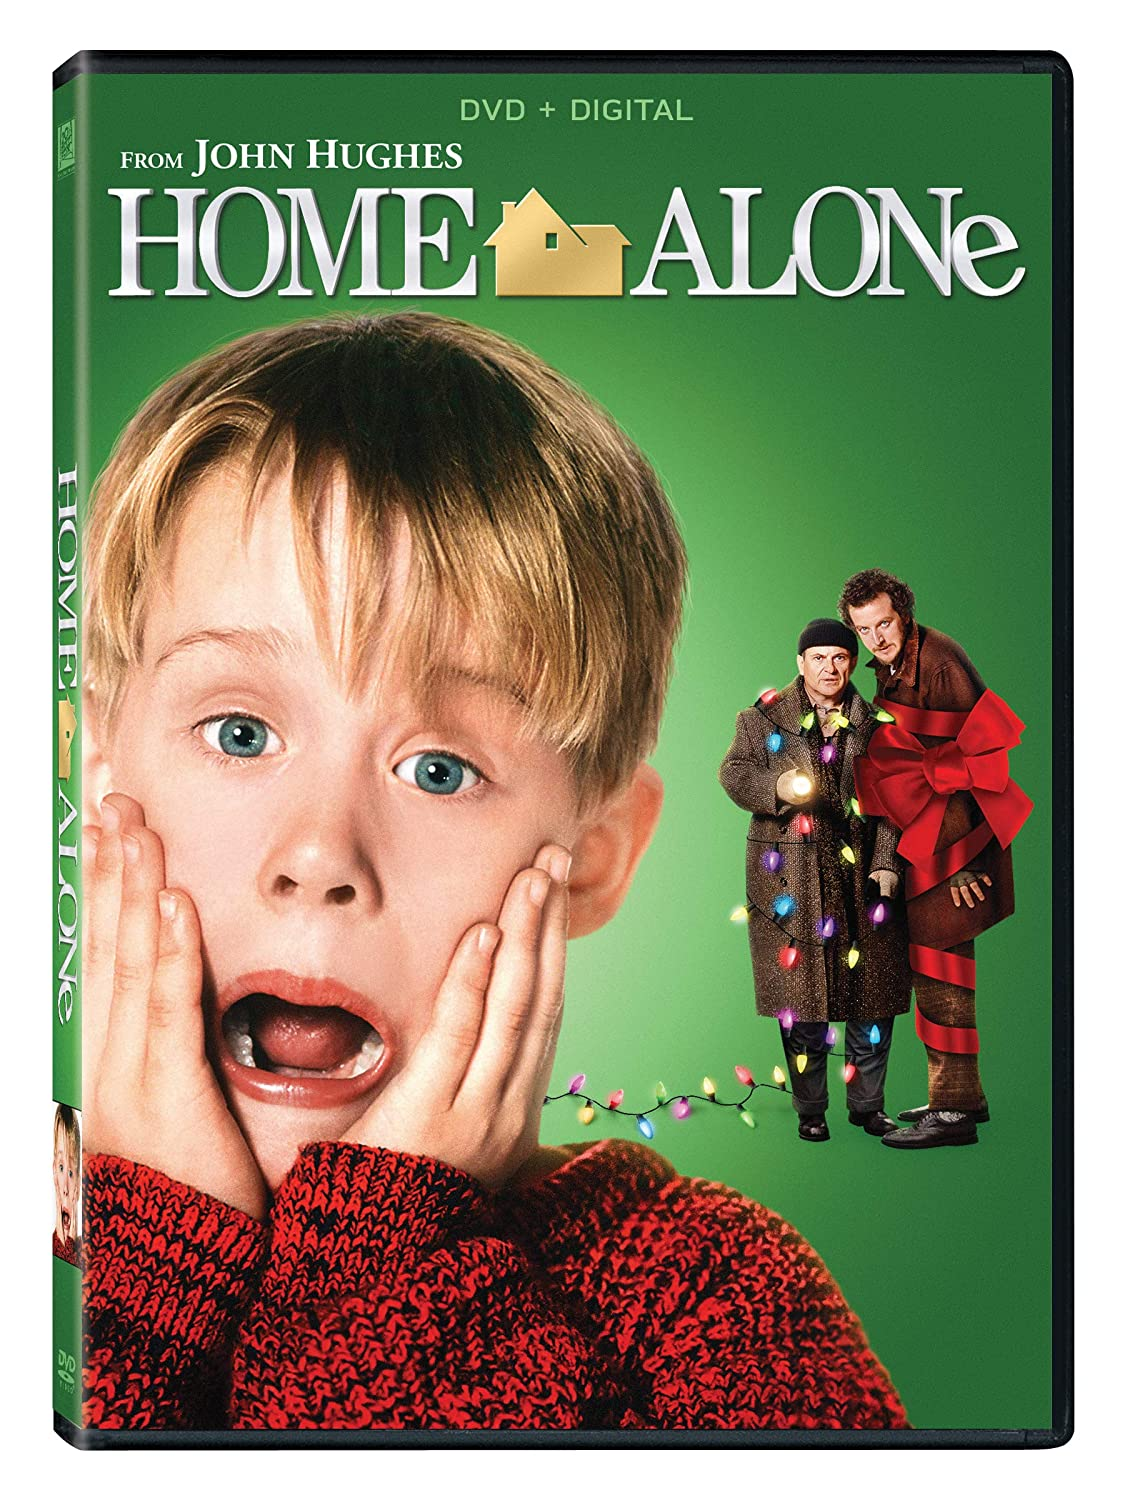 The best Christmas movies always involve family and laughing - just like Home Alone. | The Dating Divas